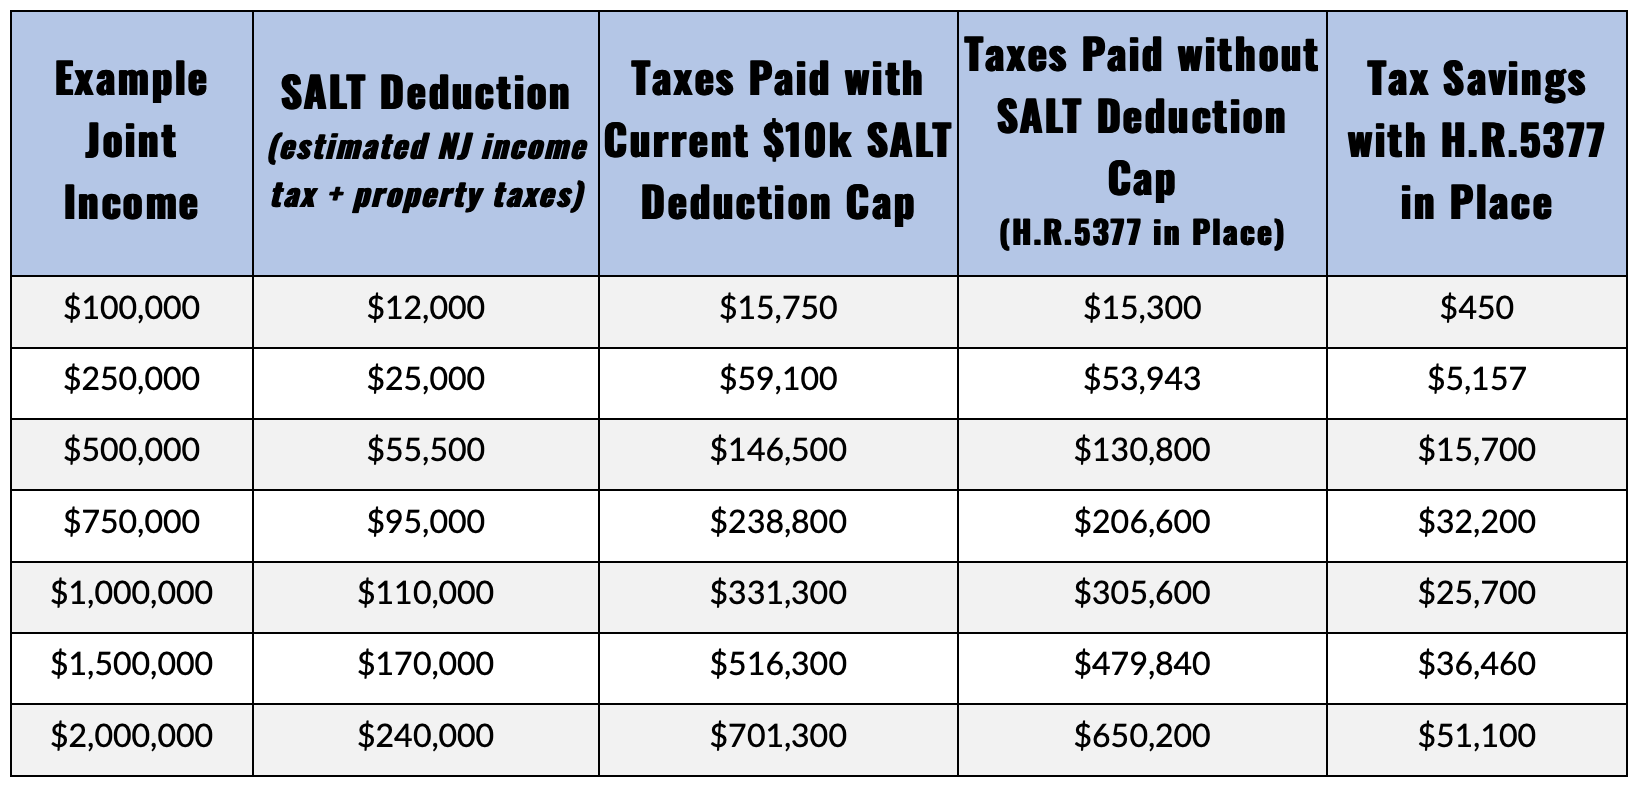 Gottheimer (inadvertently?) admits it: Repealing the SALT cap would mostly help the rich